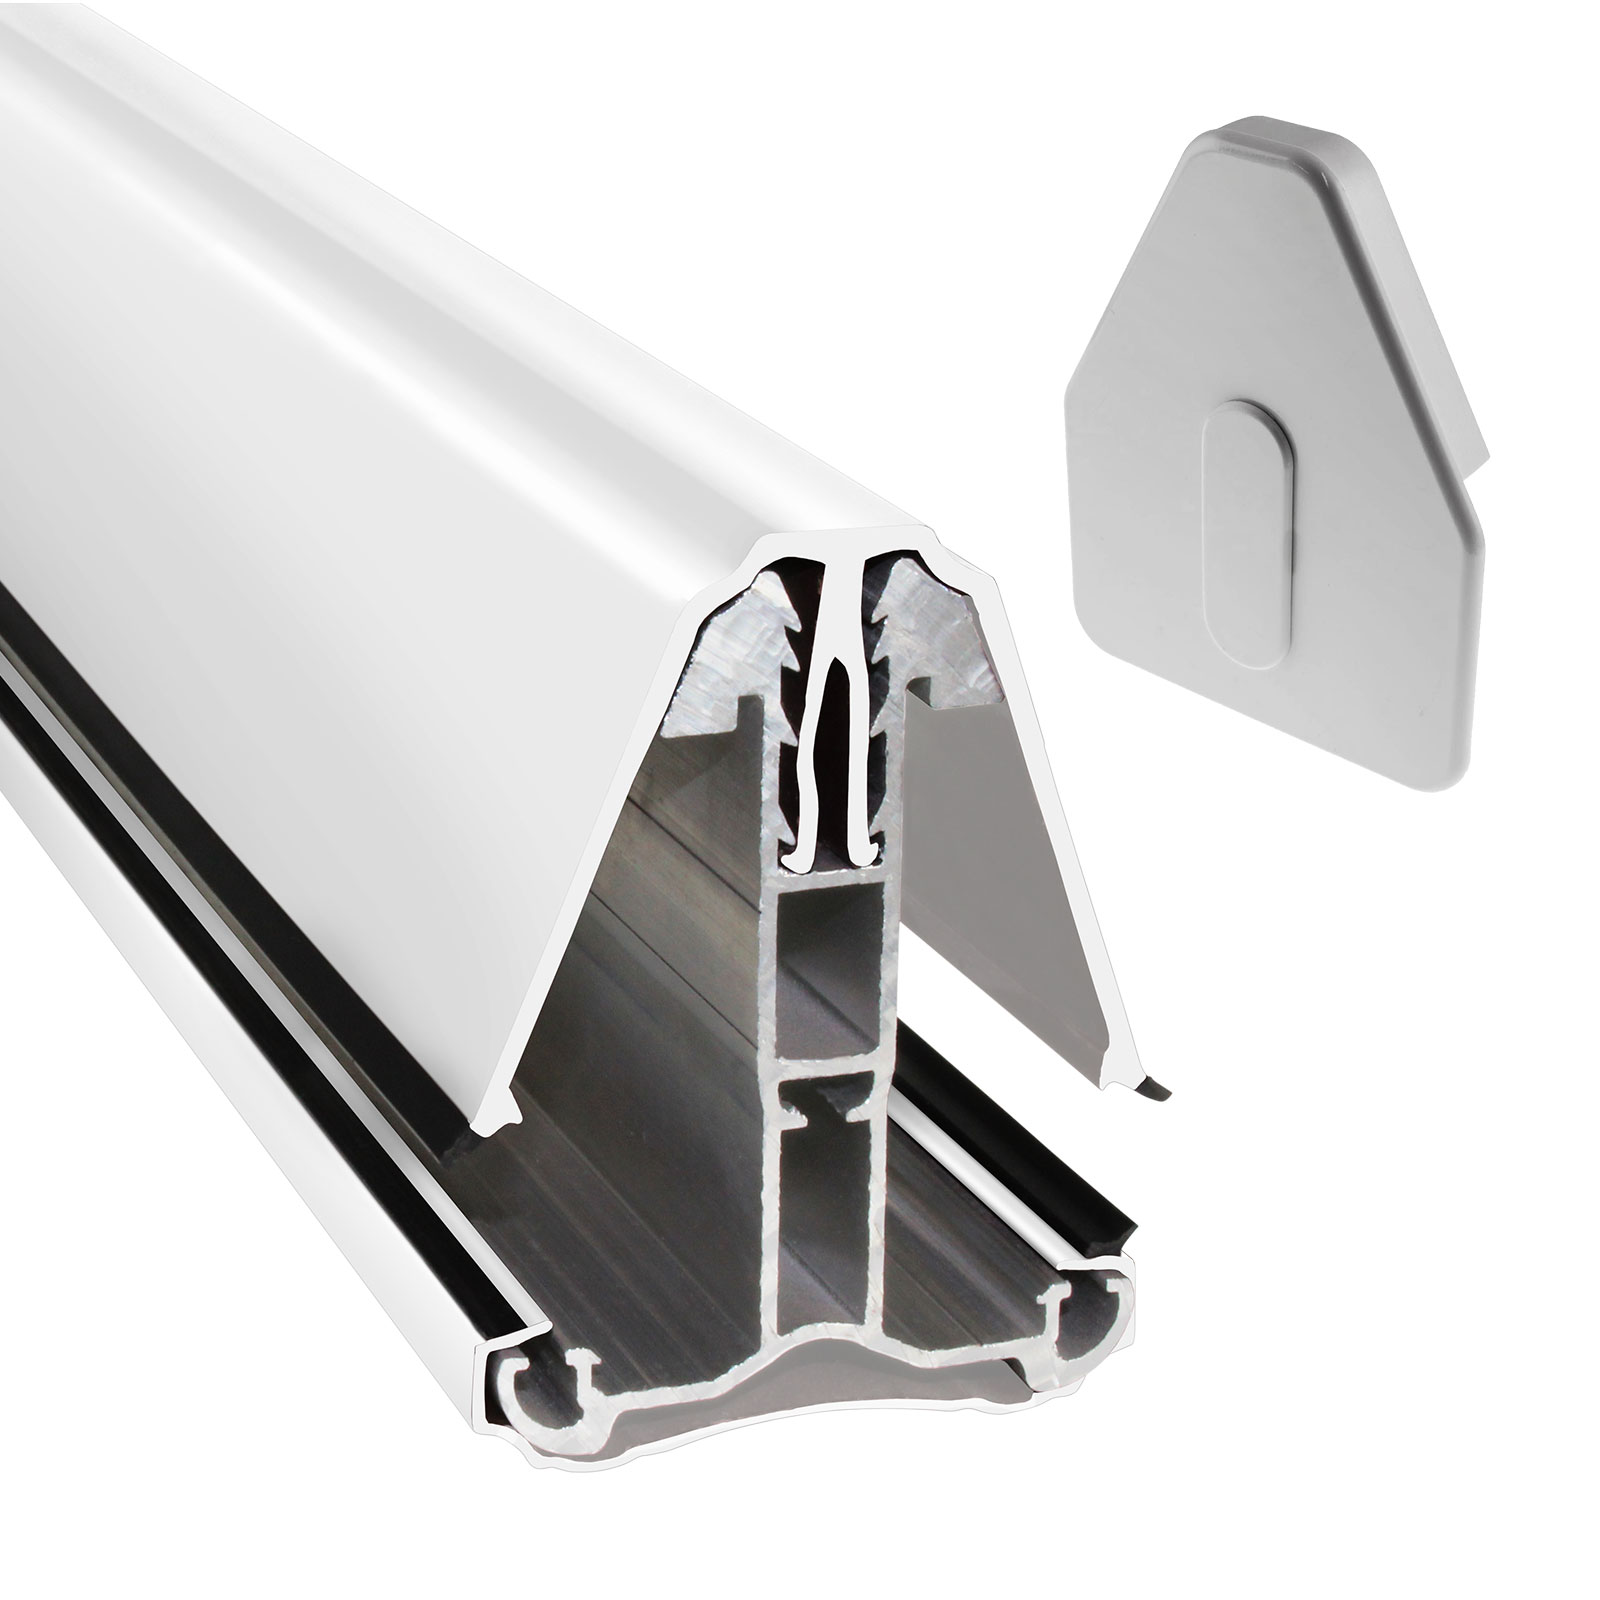 Intermediate Main Bar For Heavy Duty Self Supporting Roof